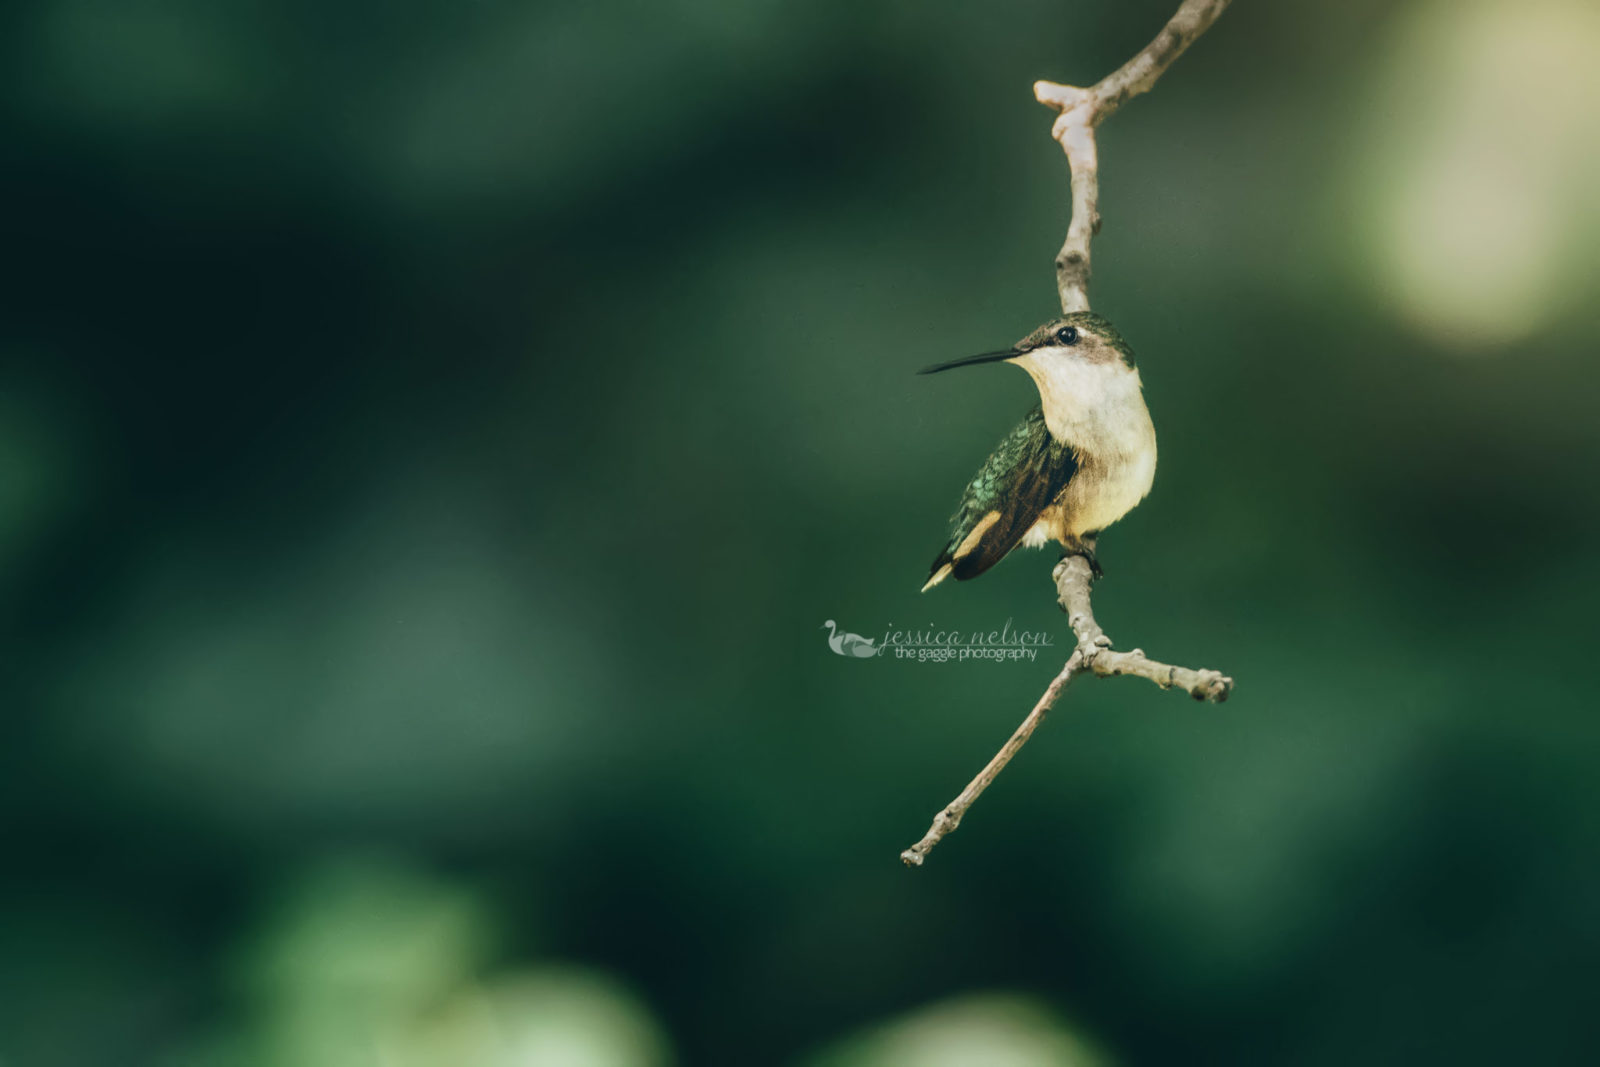 Hummingbird Taking a Rest